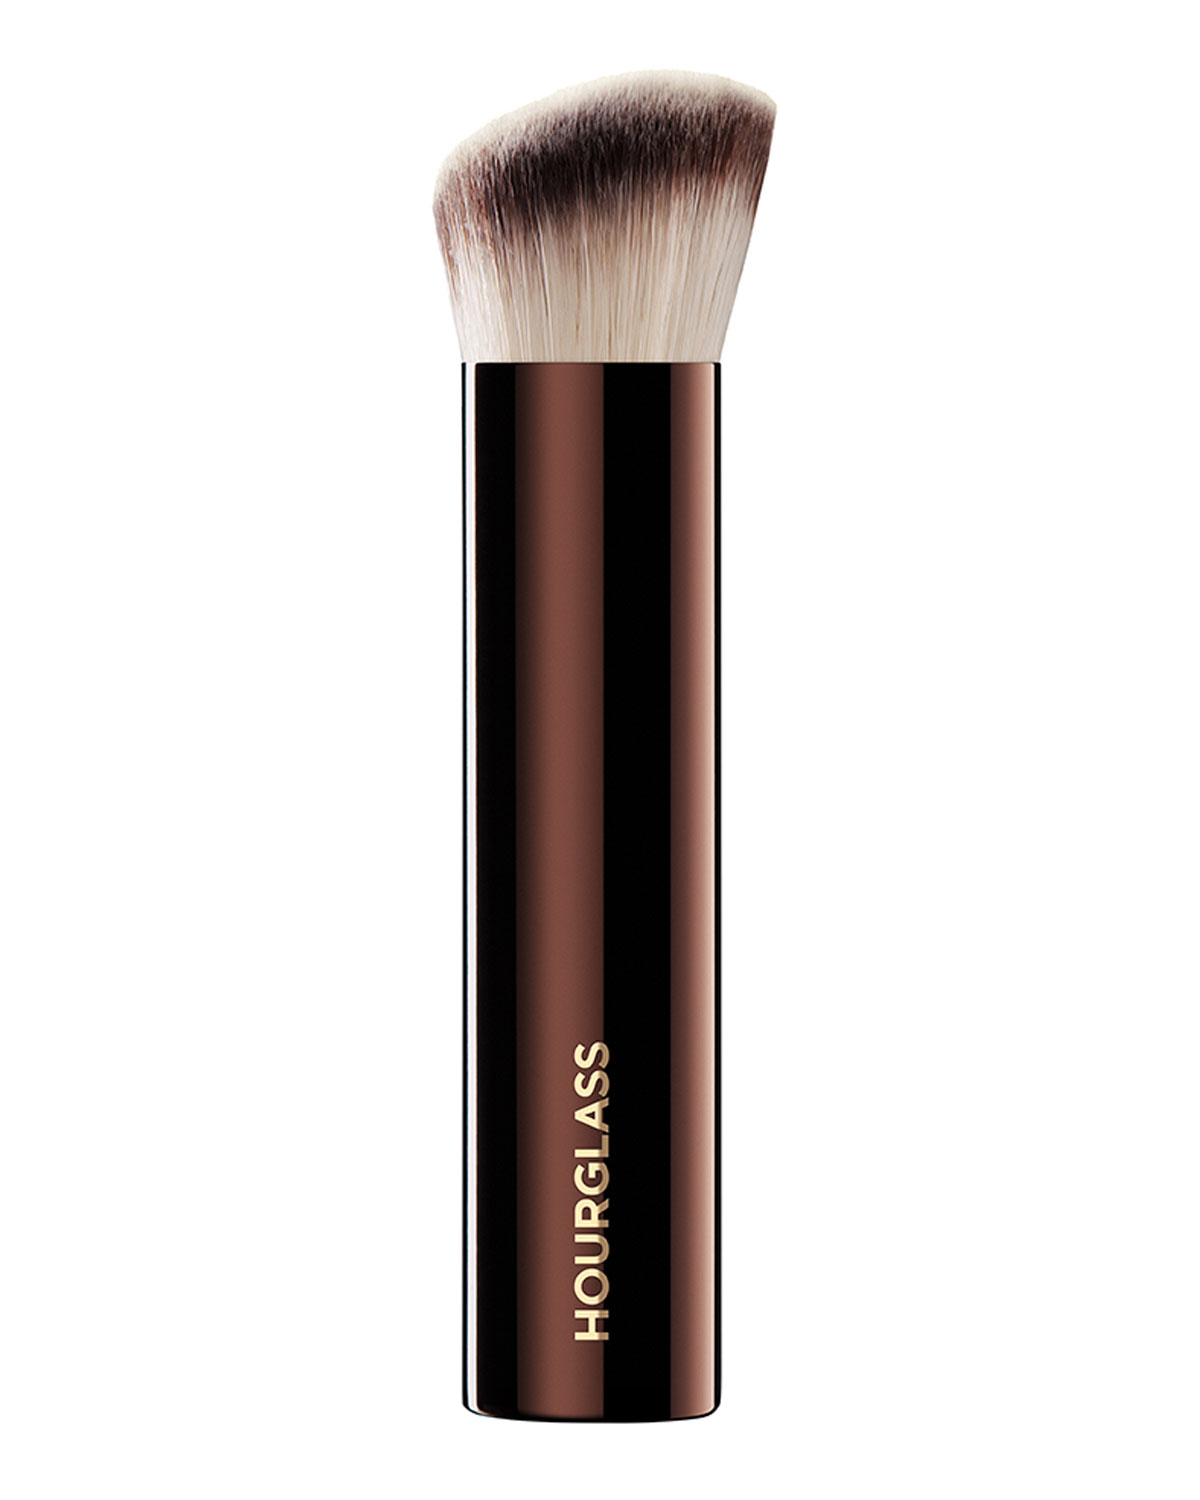 Hourglass Cosmetics Vanish Seamless Finish Foundation Makeup Brush